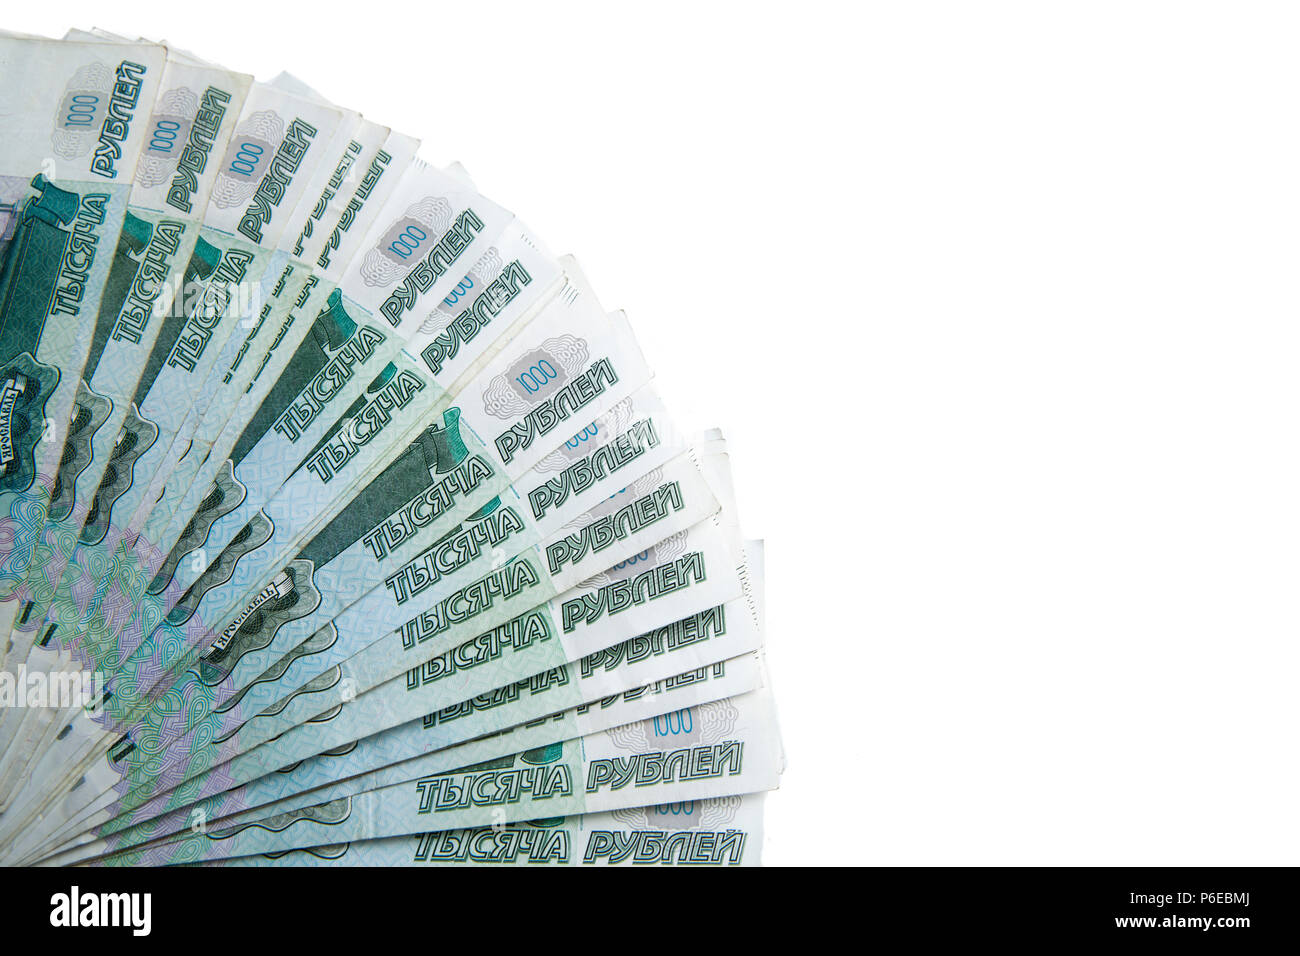 banknotes denominated 1000 rubles on a white - Stock Image